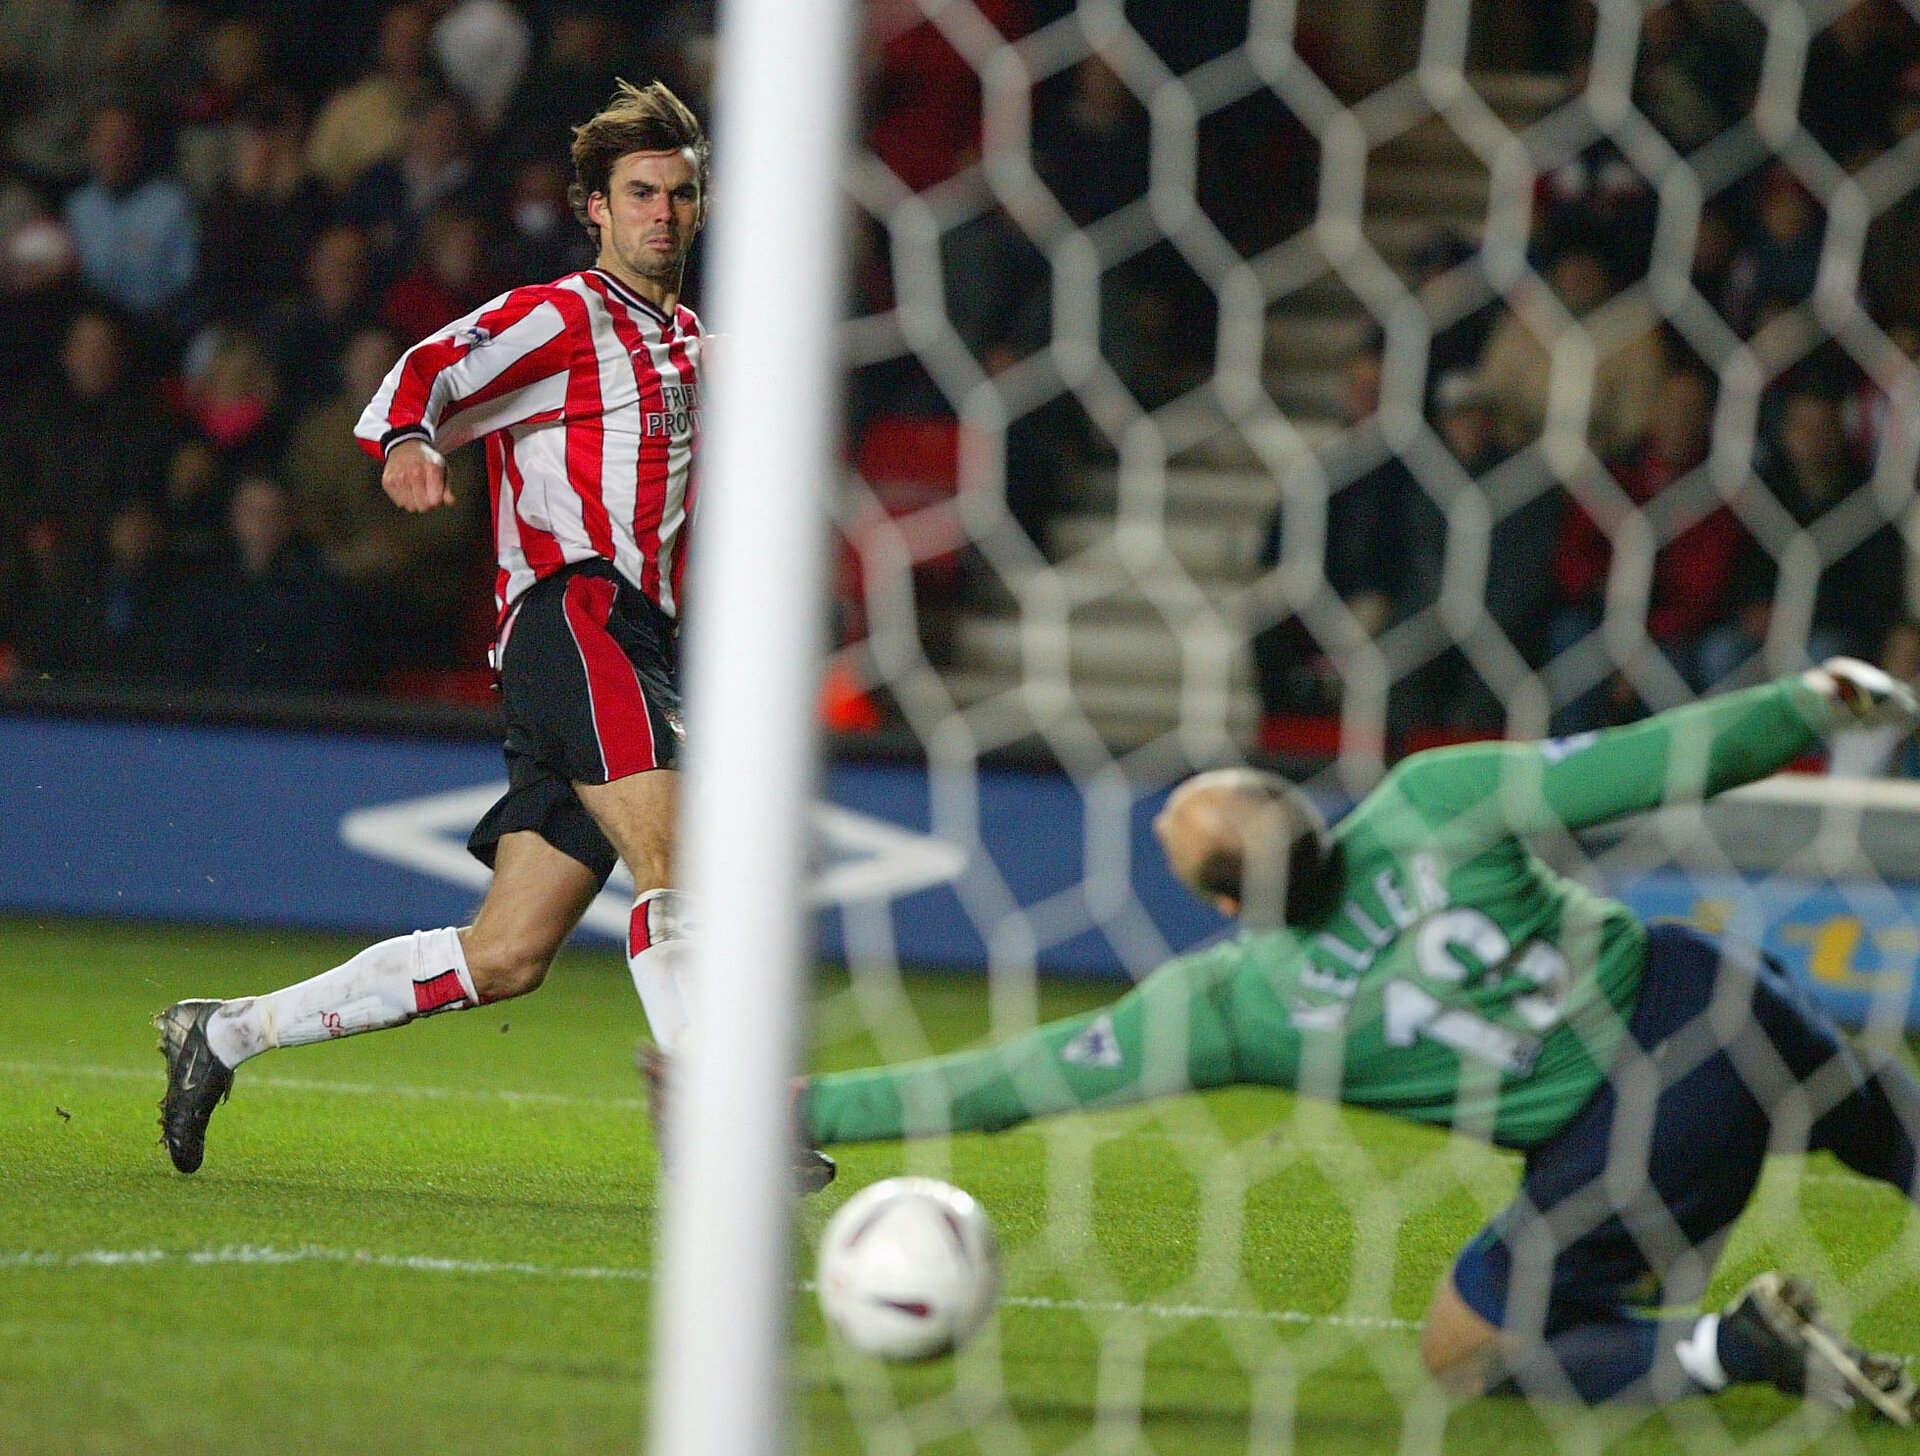 SOUTHAMPTON - JANUARY 4:  Jo Tessem of Southamton blasts the ball past Kasey Keller of Tottenham during the FA Cup 3rd Round  match between Southampton and Tottenham Hotspur at the St. Mary's Stadium in Southampton, England on January 4, 2003. (Photo by Mike Hewitt/Getty Images)